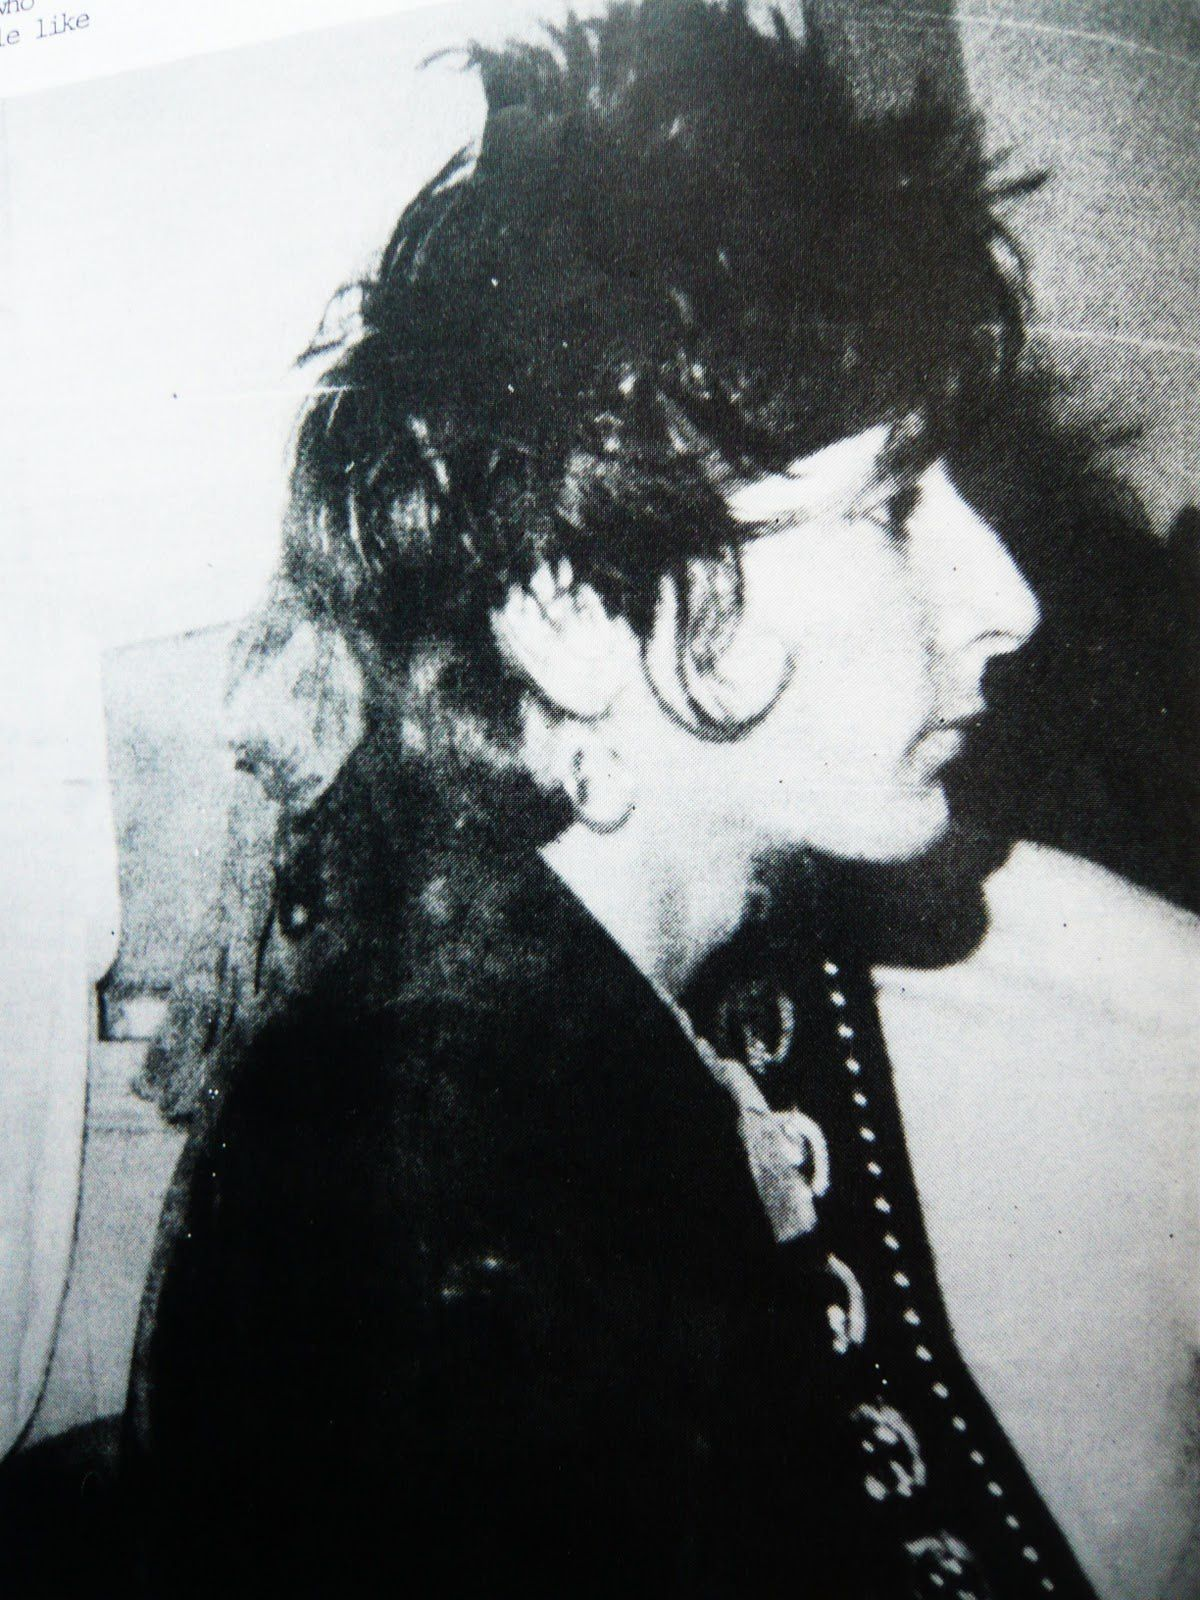 Johnny Thunders, 1984 - credit: Nina Antonia